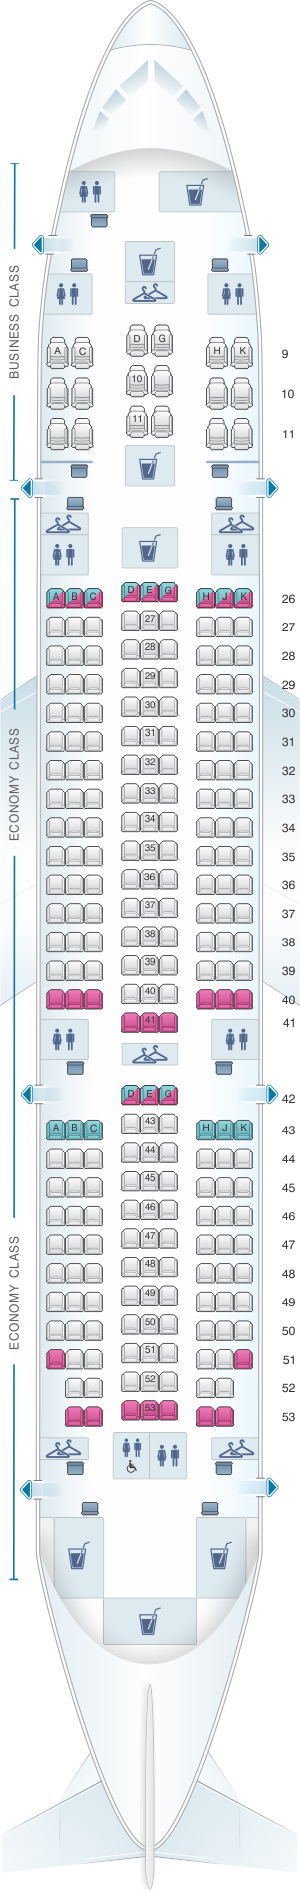 Seat map for Royal Brunei Airlines Boeing B787-8 Dreamliner